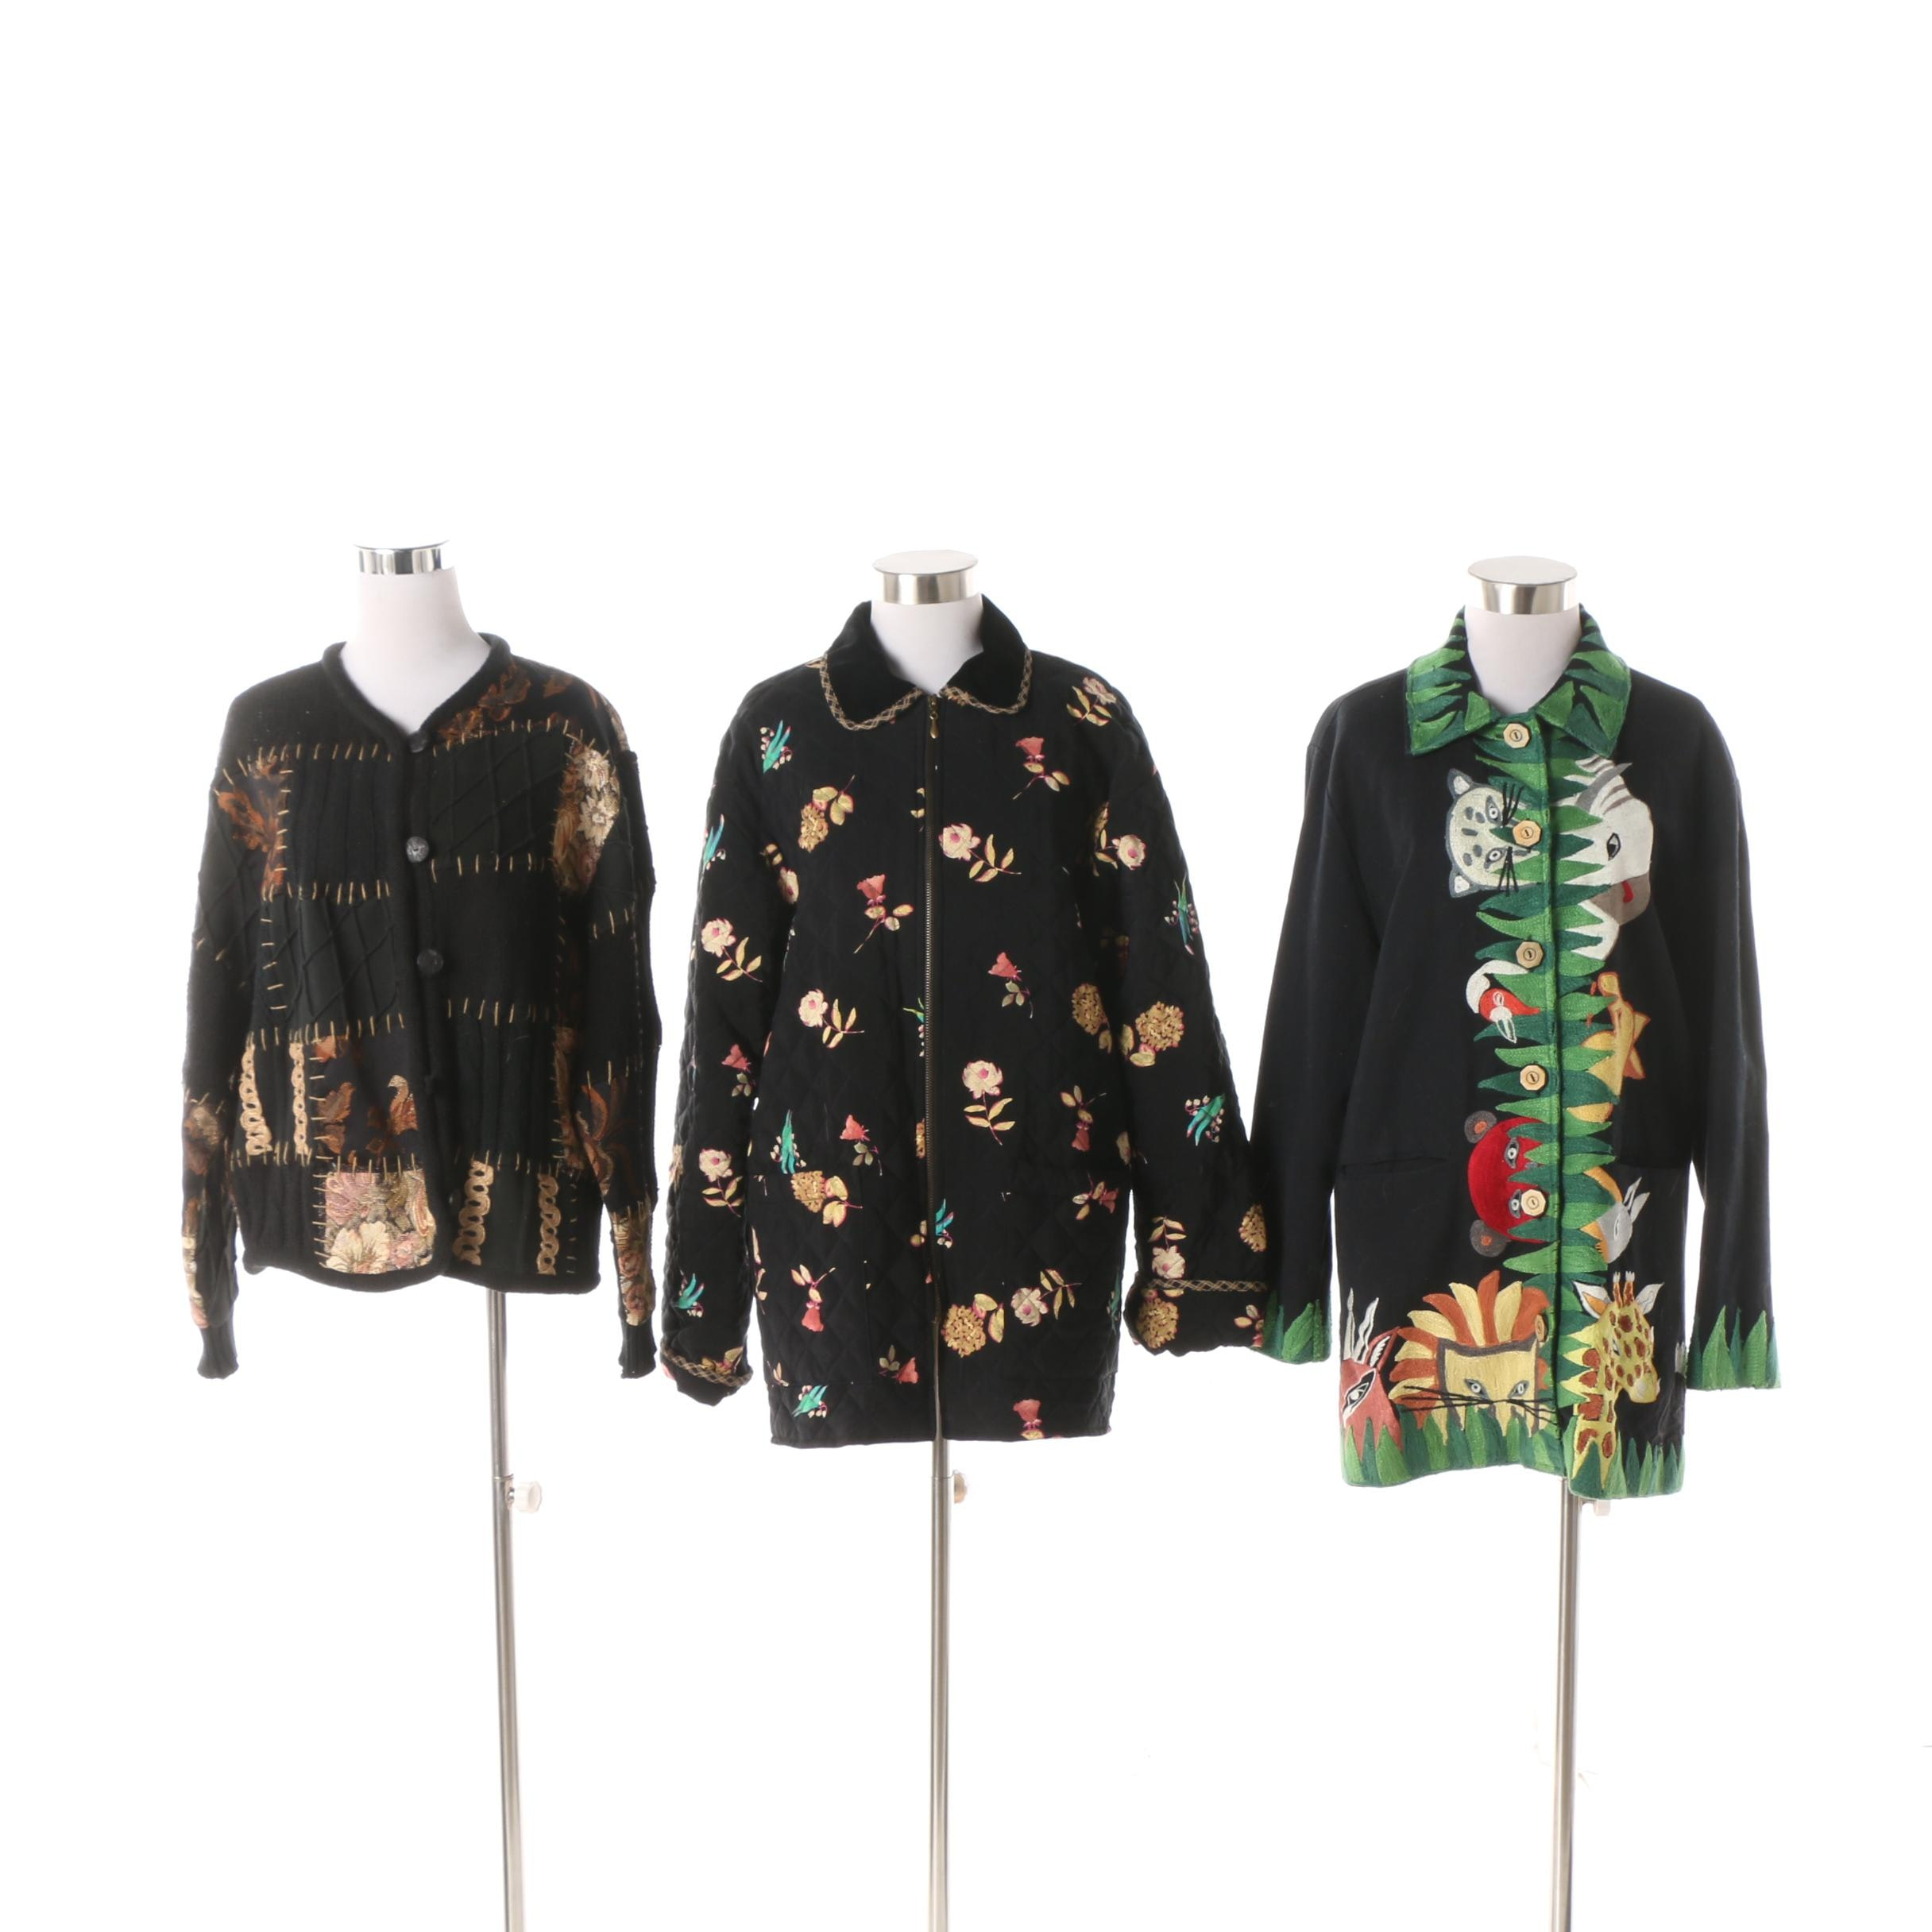 Women's Embellished Cardigan and Jackets including Sandy Starkman